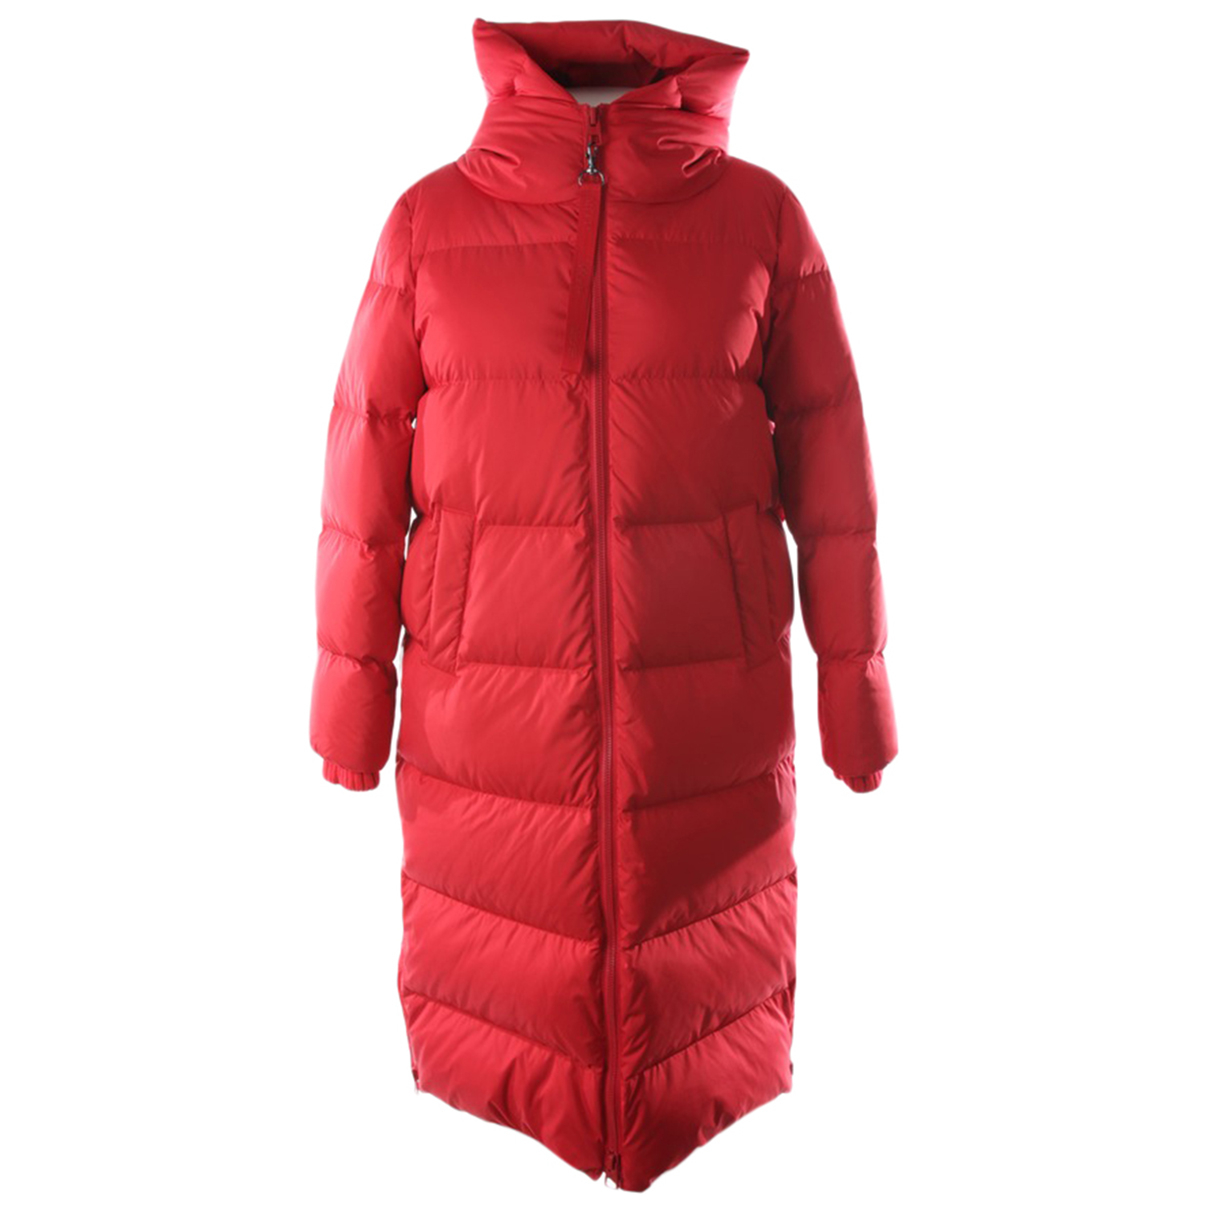 Autre Marque \N Red jacket for Women 40 FR